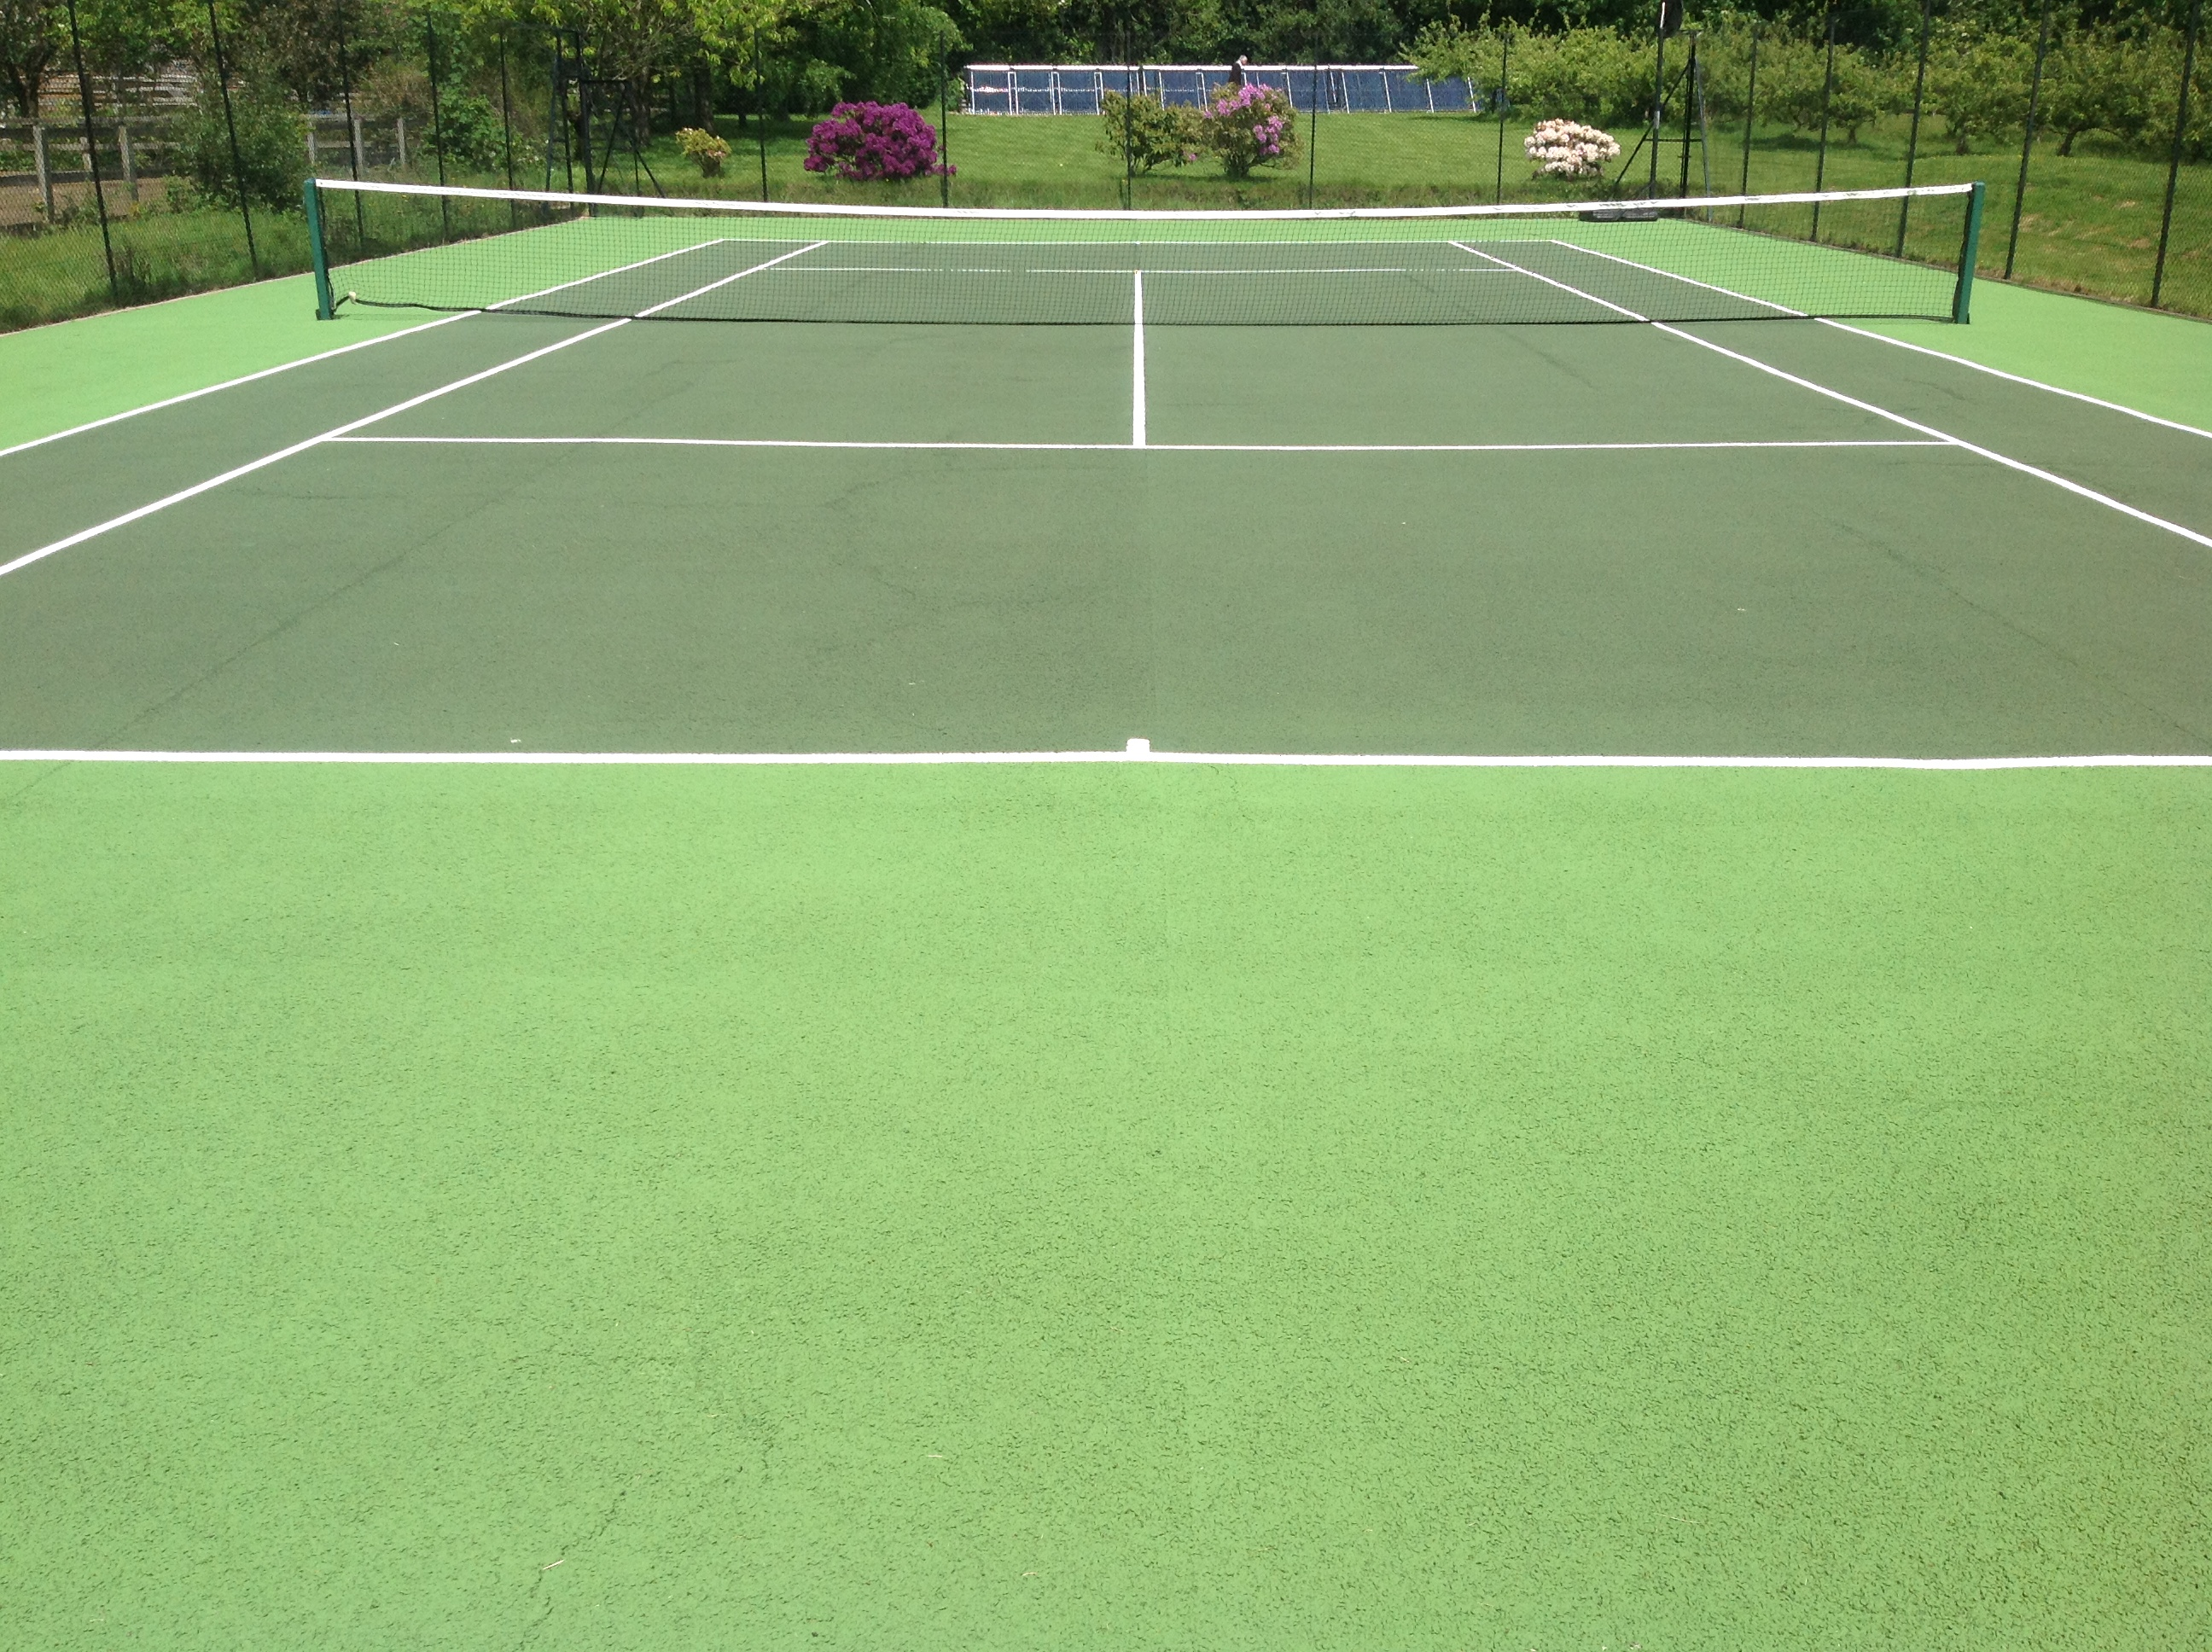 Tennis court renovation renovate existing tennis courts for Sport court paint